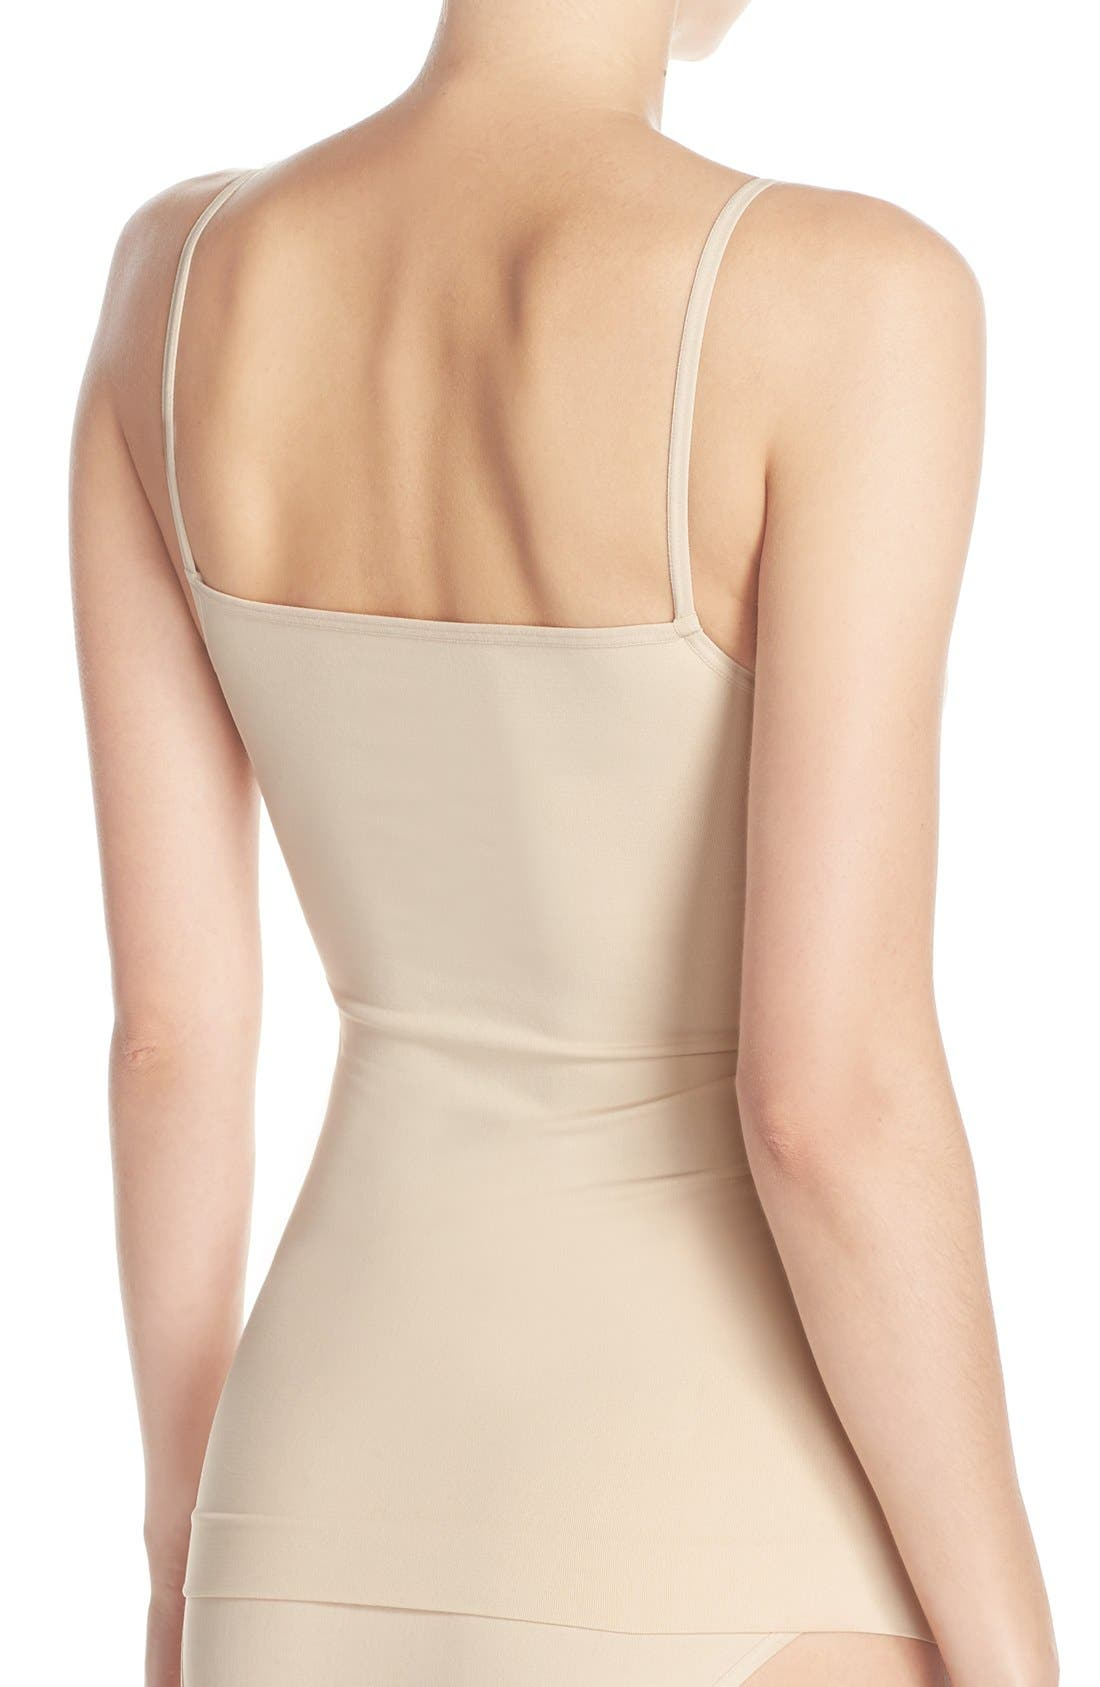 Alternate Image 2  - Nordstrom Lingerie Two-Way Seamless Camisole